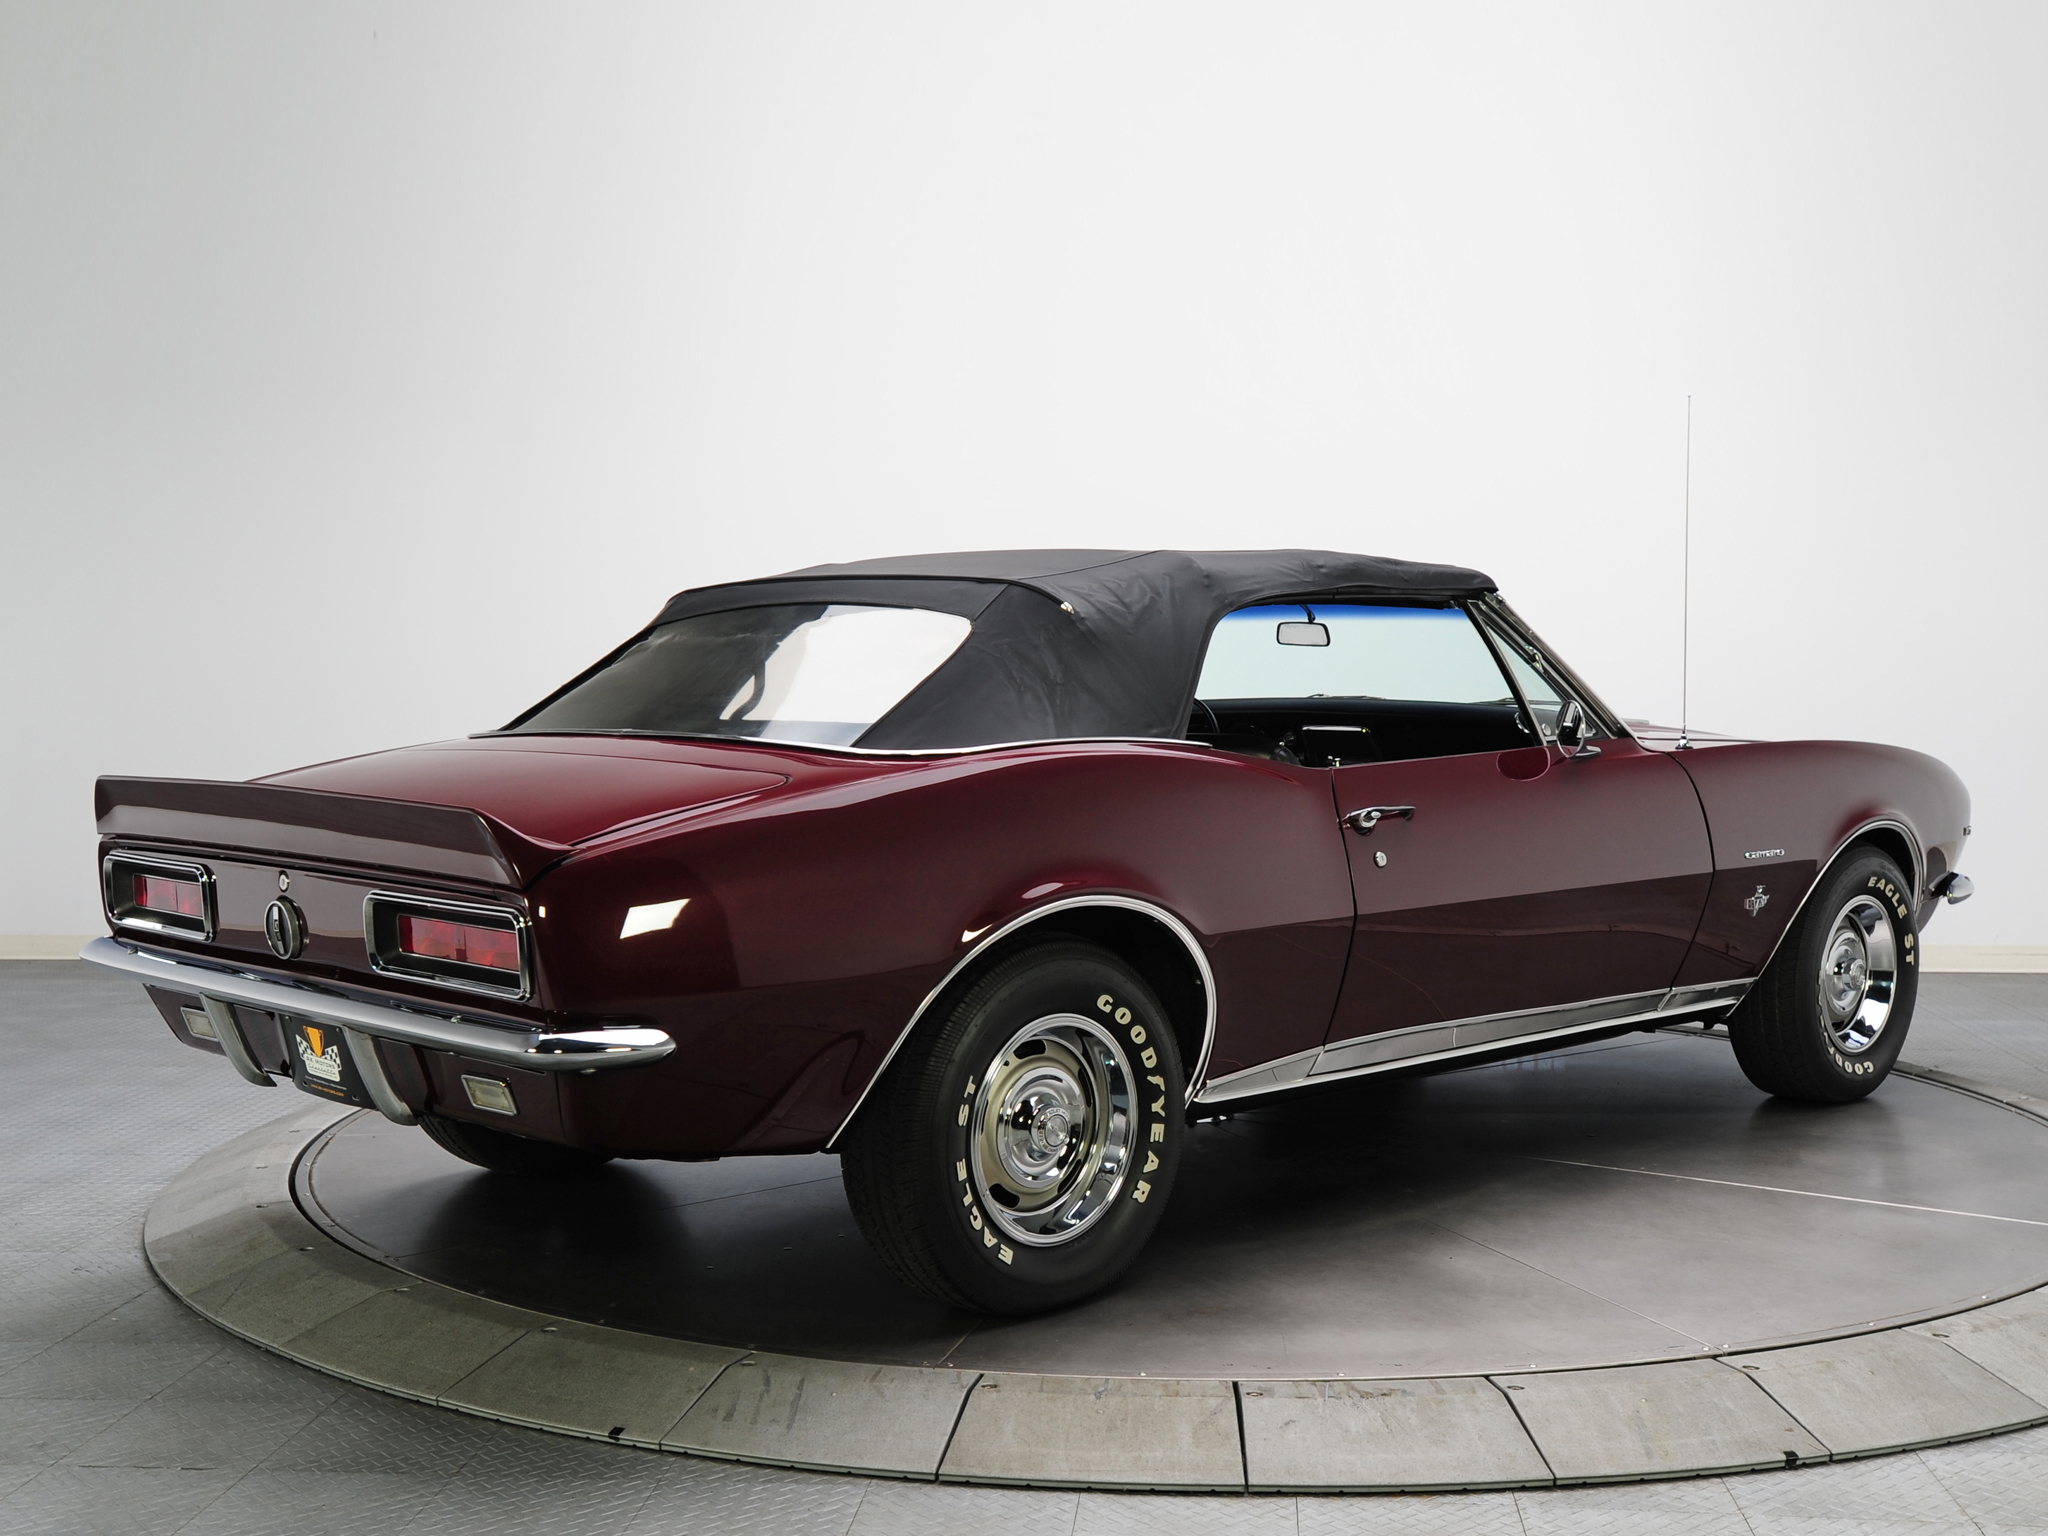 Chevrolet Wallpapers Chevrolet Camaro RS Convertible 1967 2048x1536